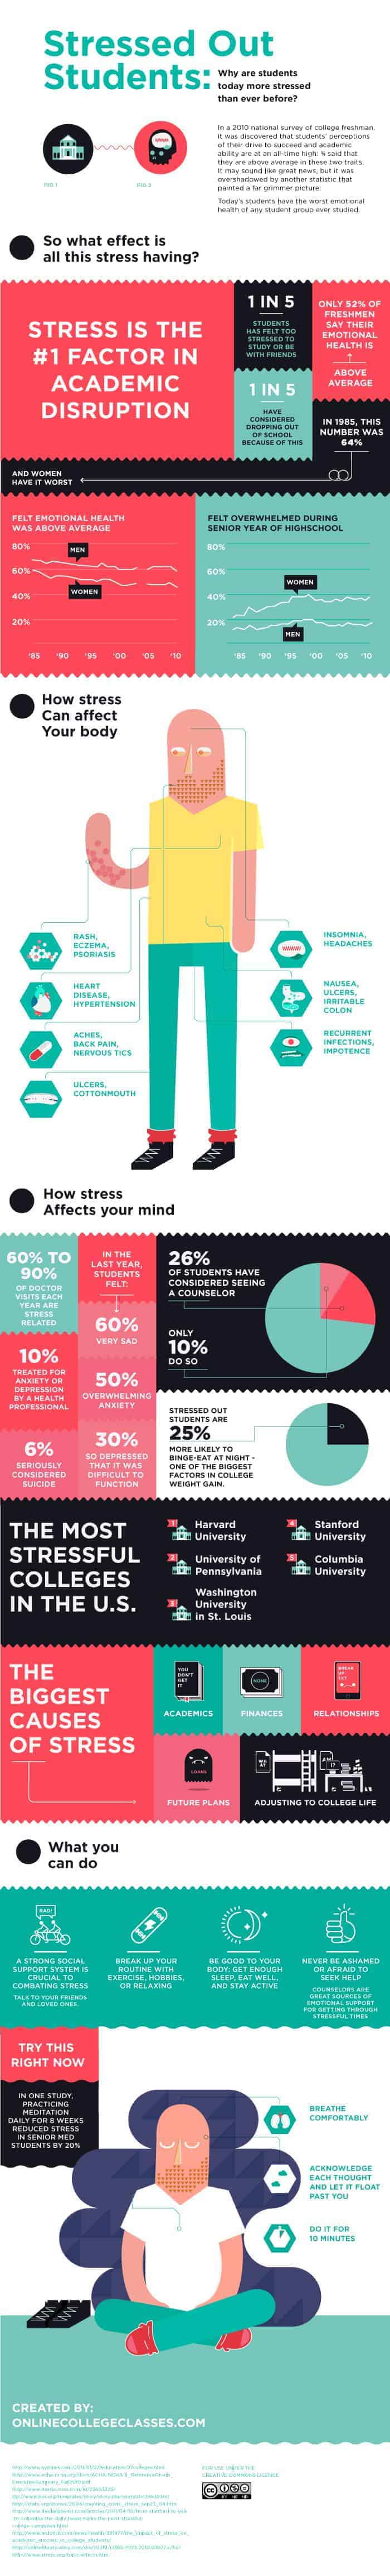 Stressed-out students infographic